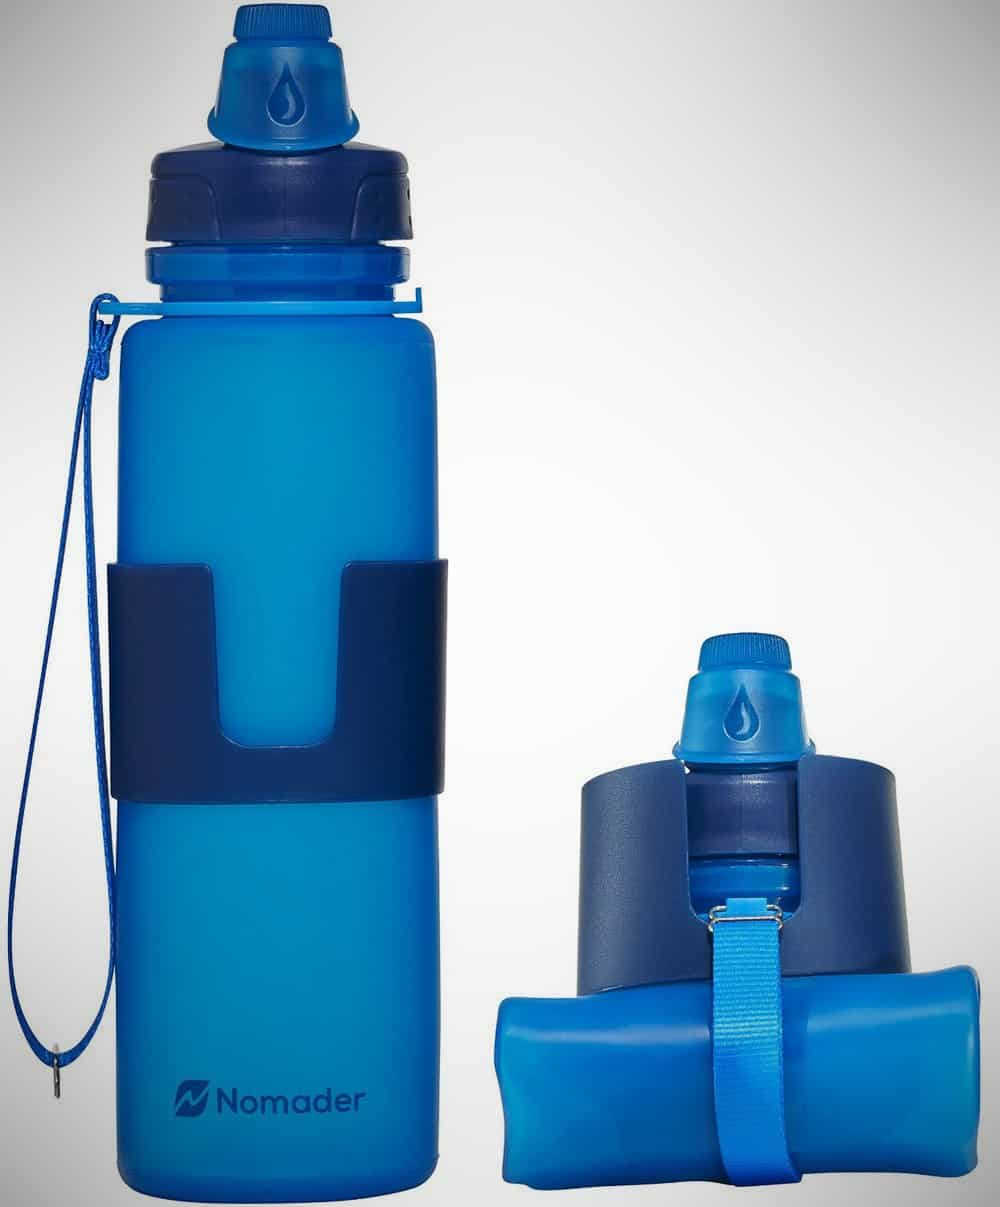 Nomader Collapsible – water bottle